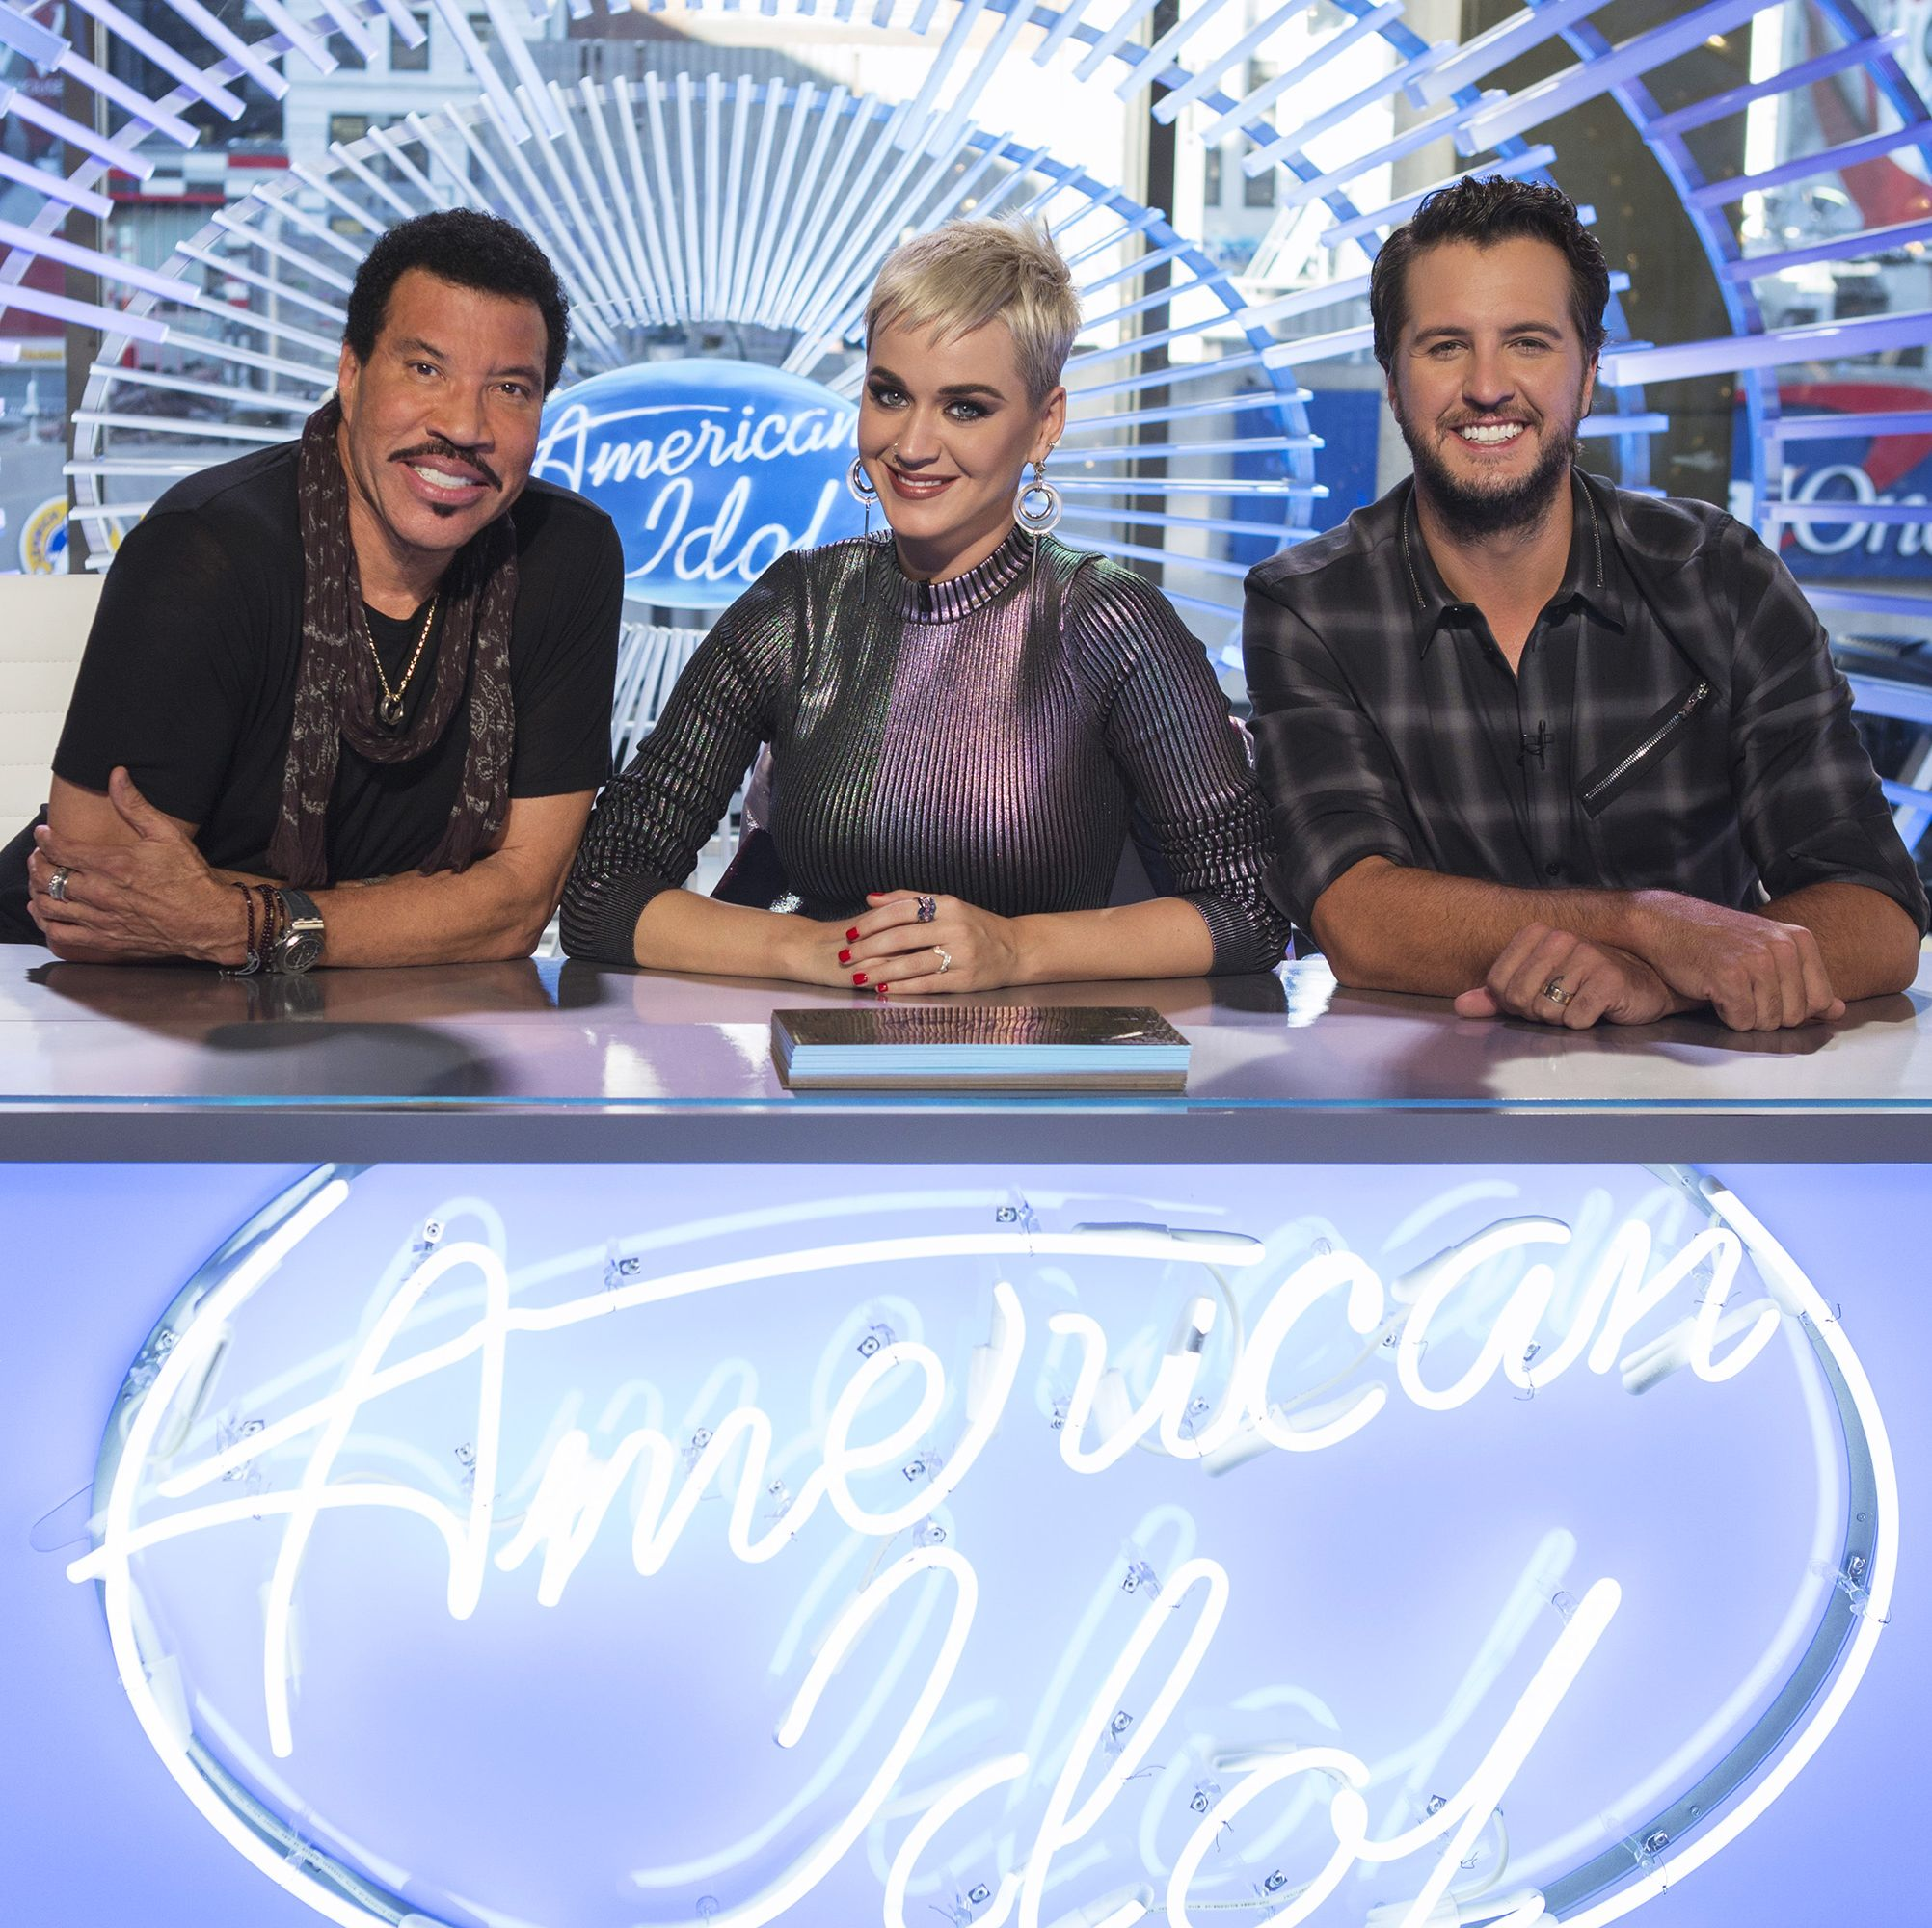 'American Idol' Will Change in Some Major Ways When the New Season Starts in 2019